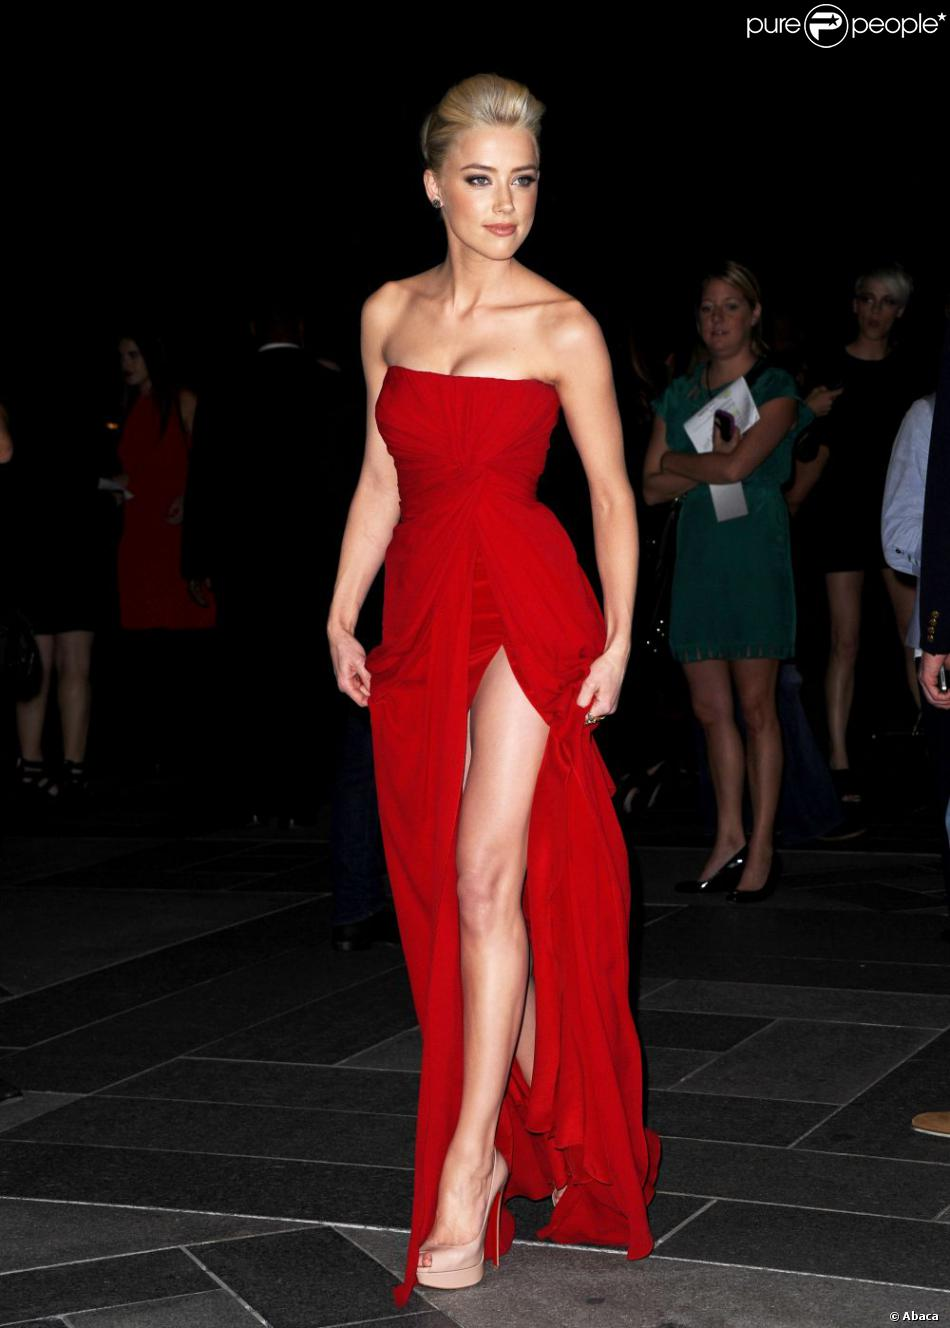 Amber Heard Nouvelle Bombe Hollywoodienne Une Silhouette